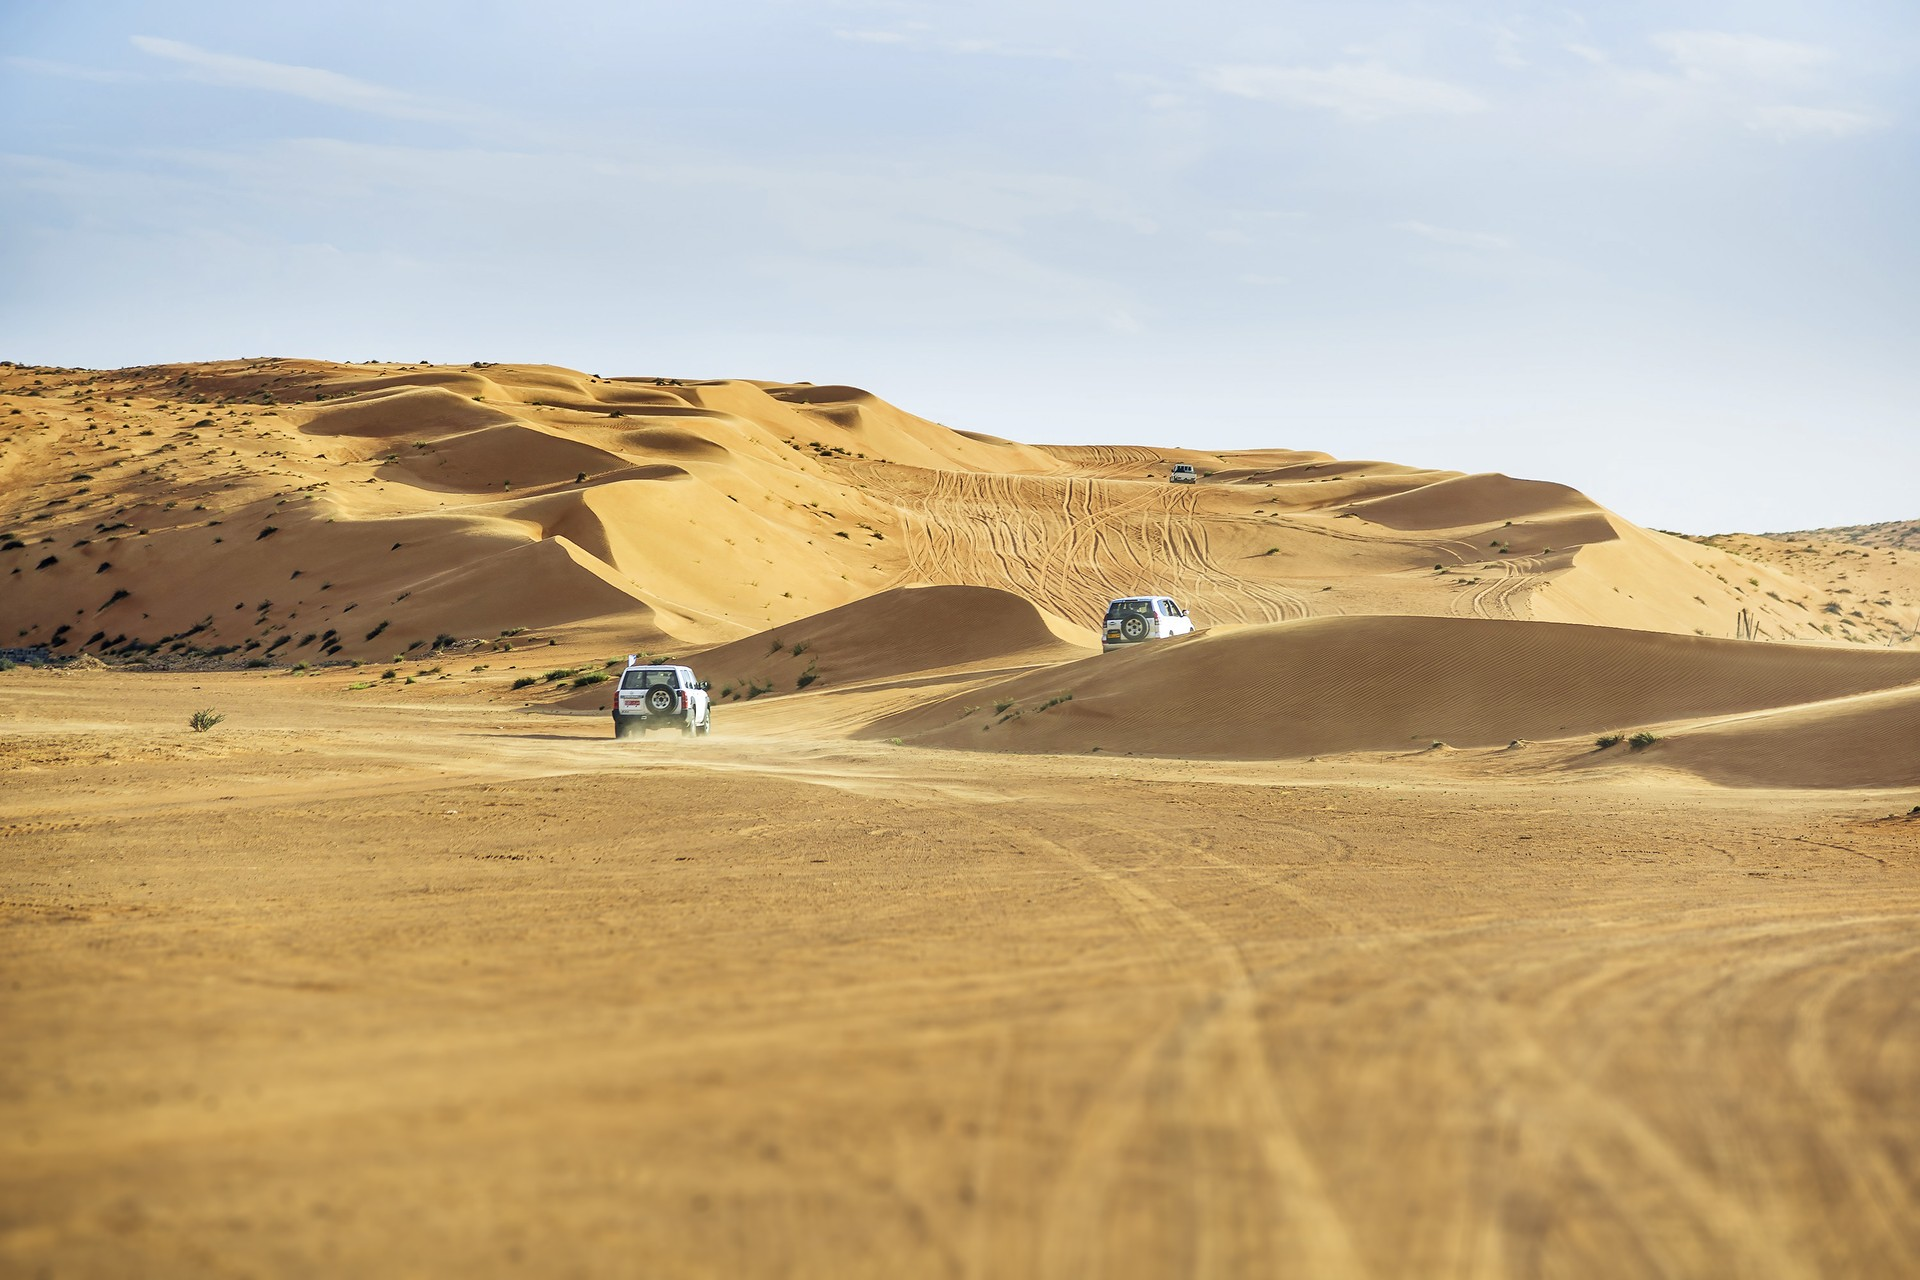 4x4s in Wahiba Sands Oman